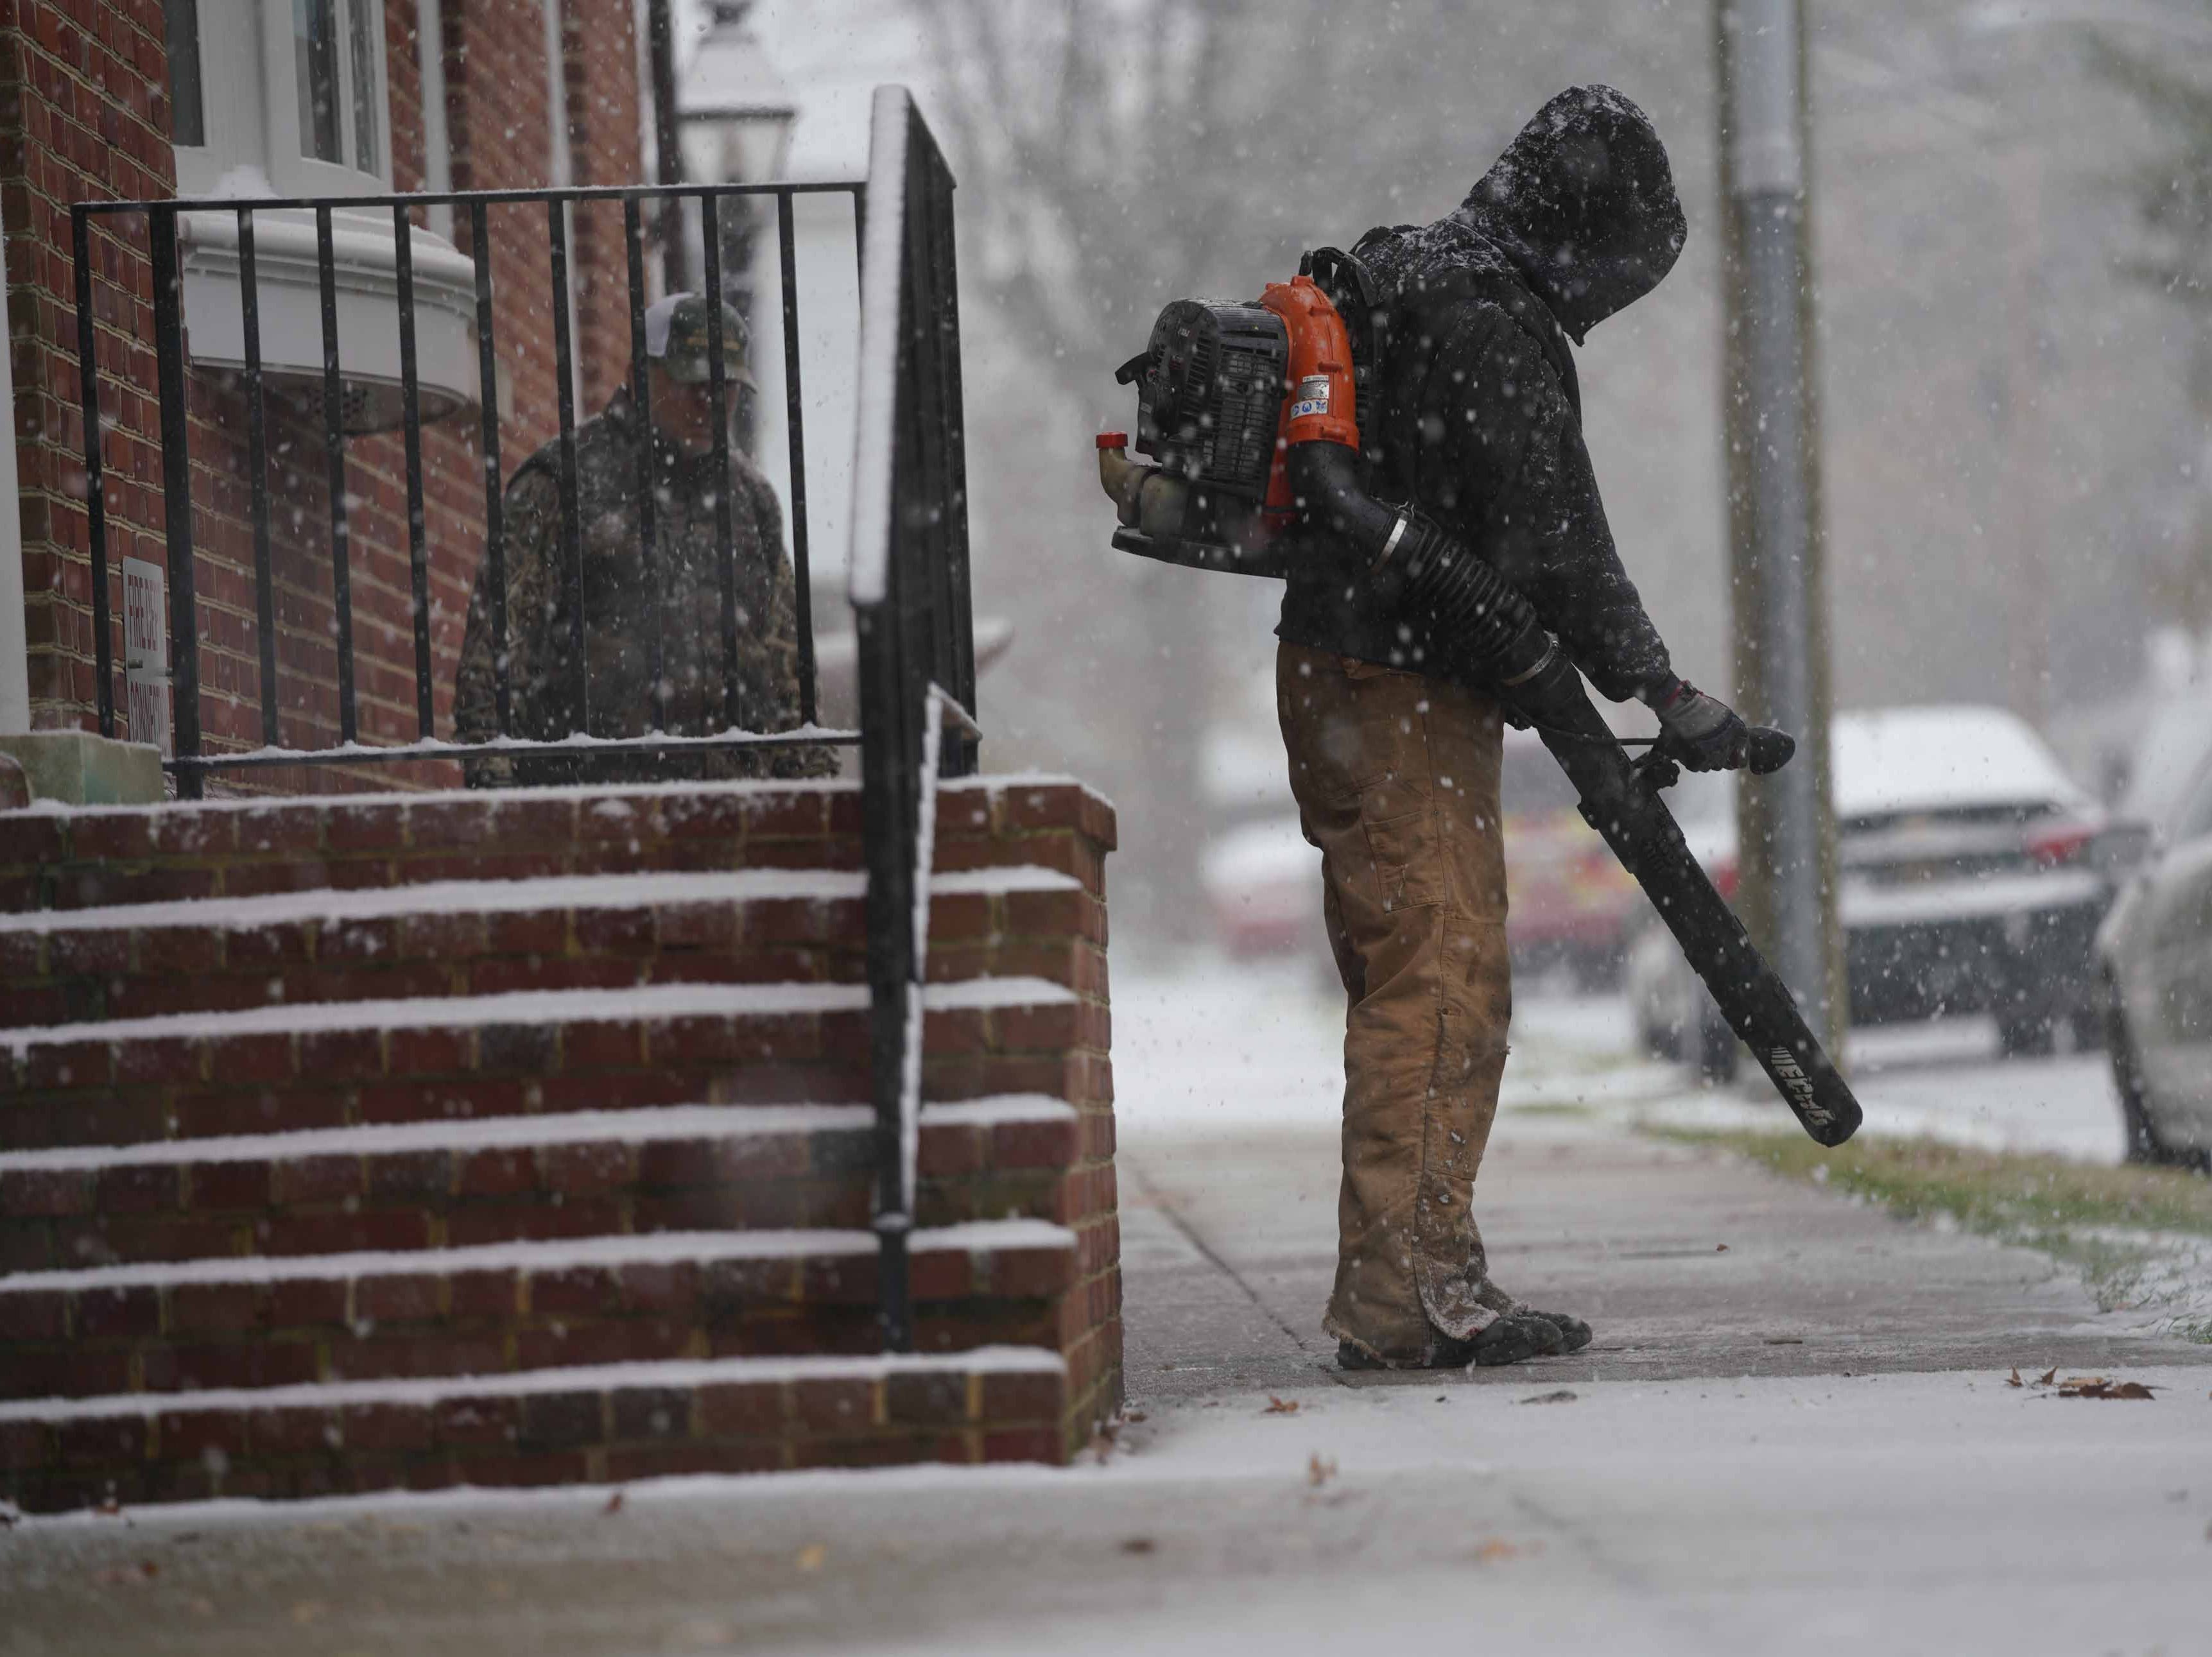 Workers help clear snow from sidewalks on E. 5th St. in Old New Castle on Thursday morning.